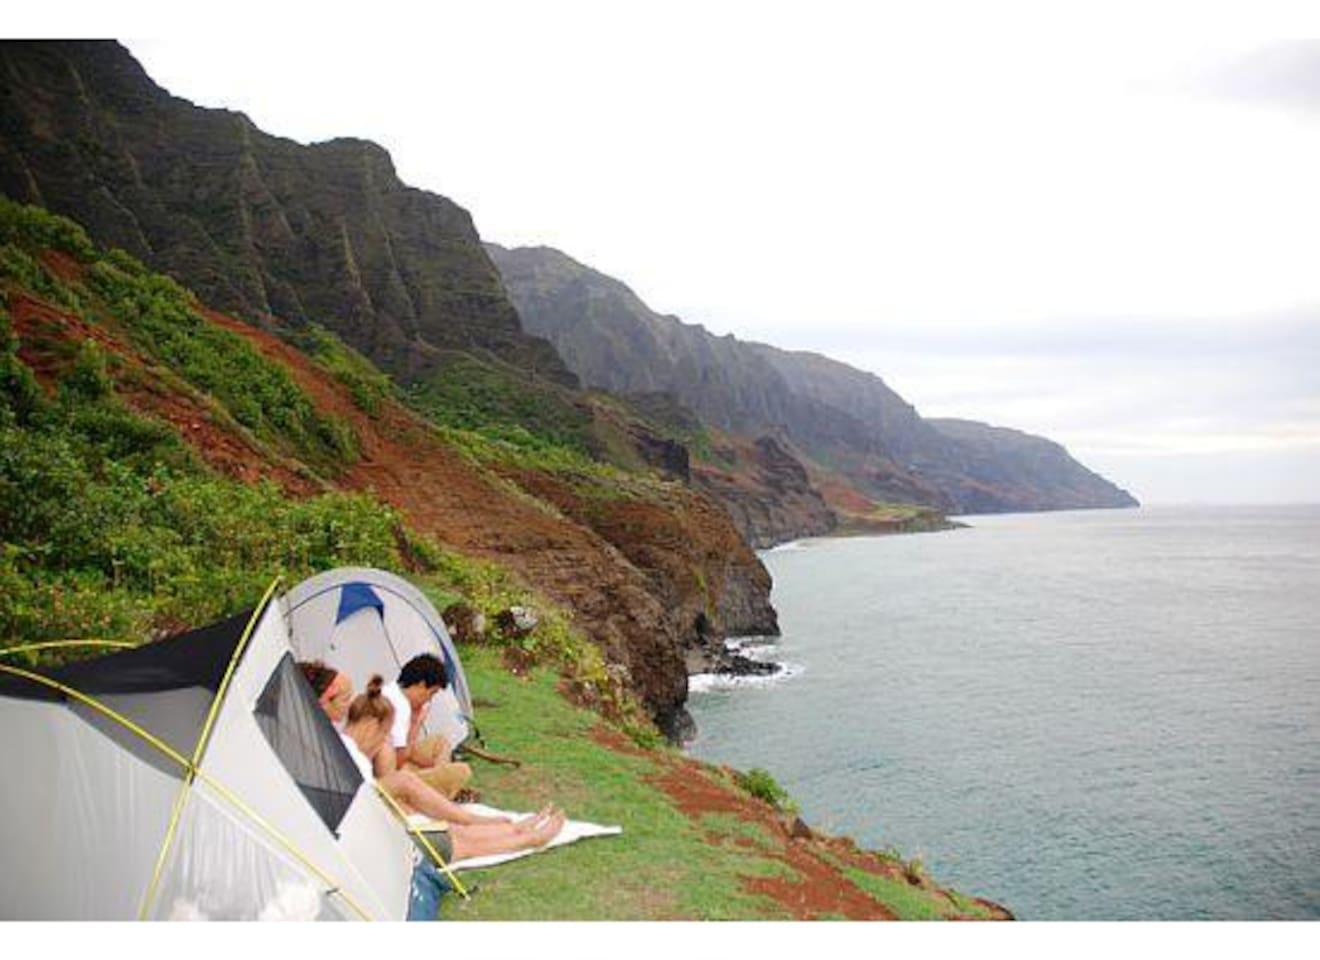 our tents are physical structures at the physical location of Kalalau on Kauai